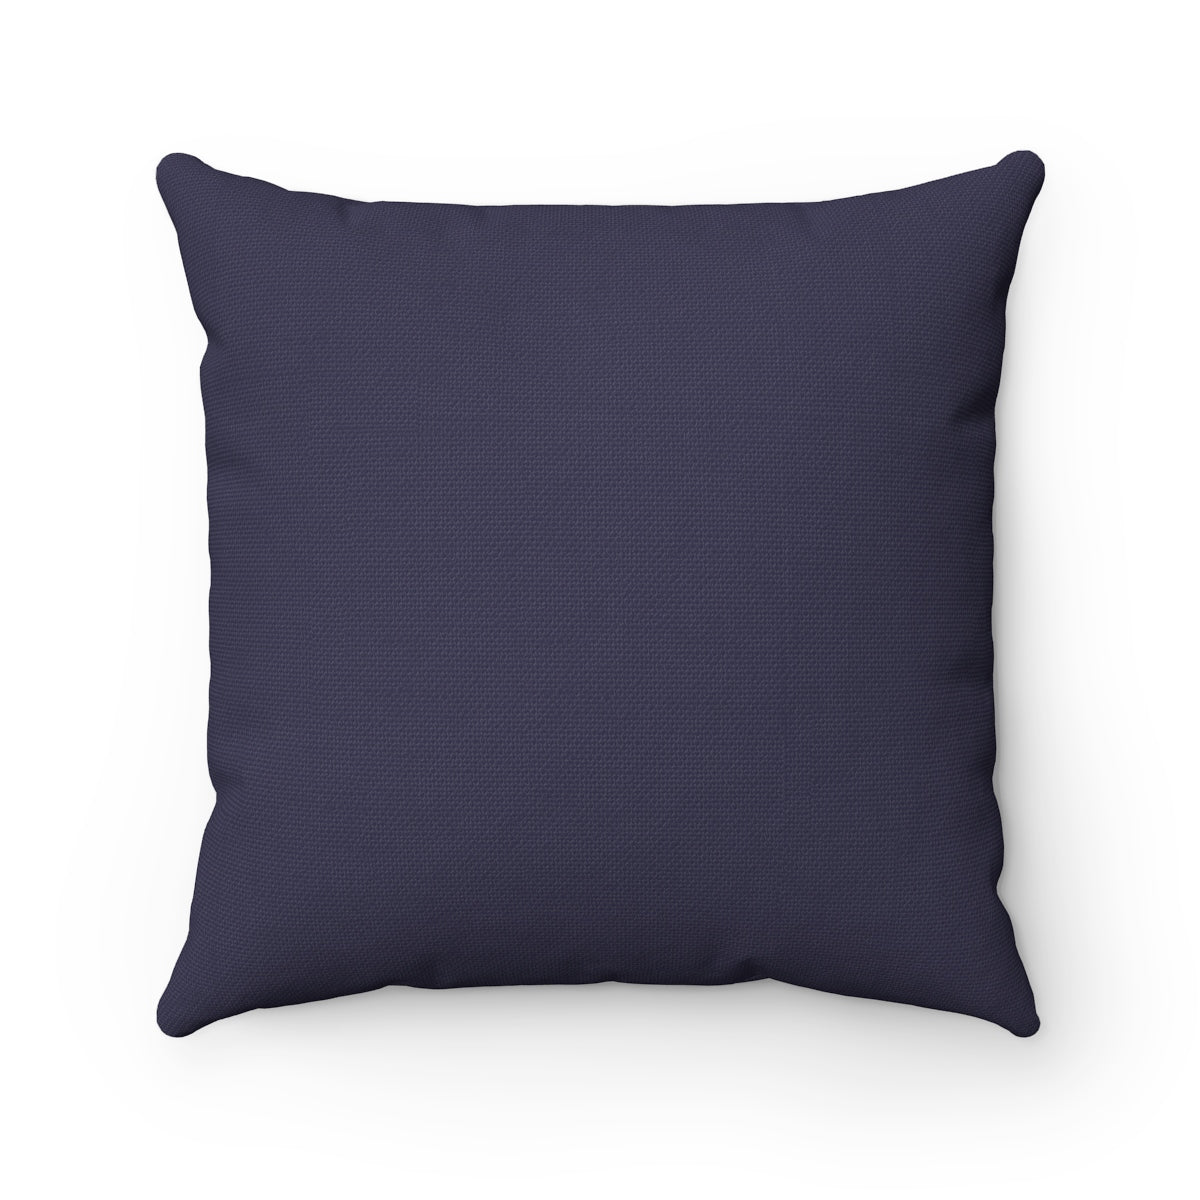 Tent Life Pillow: Dark Blue